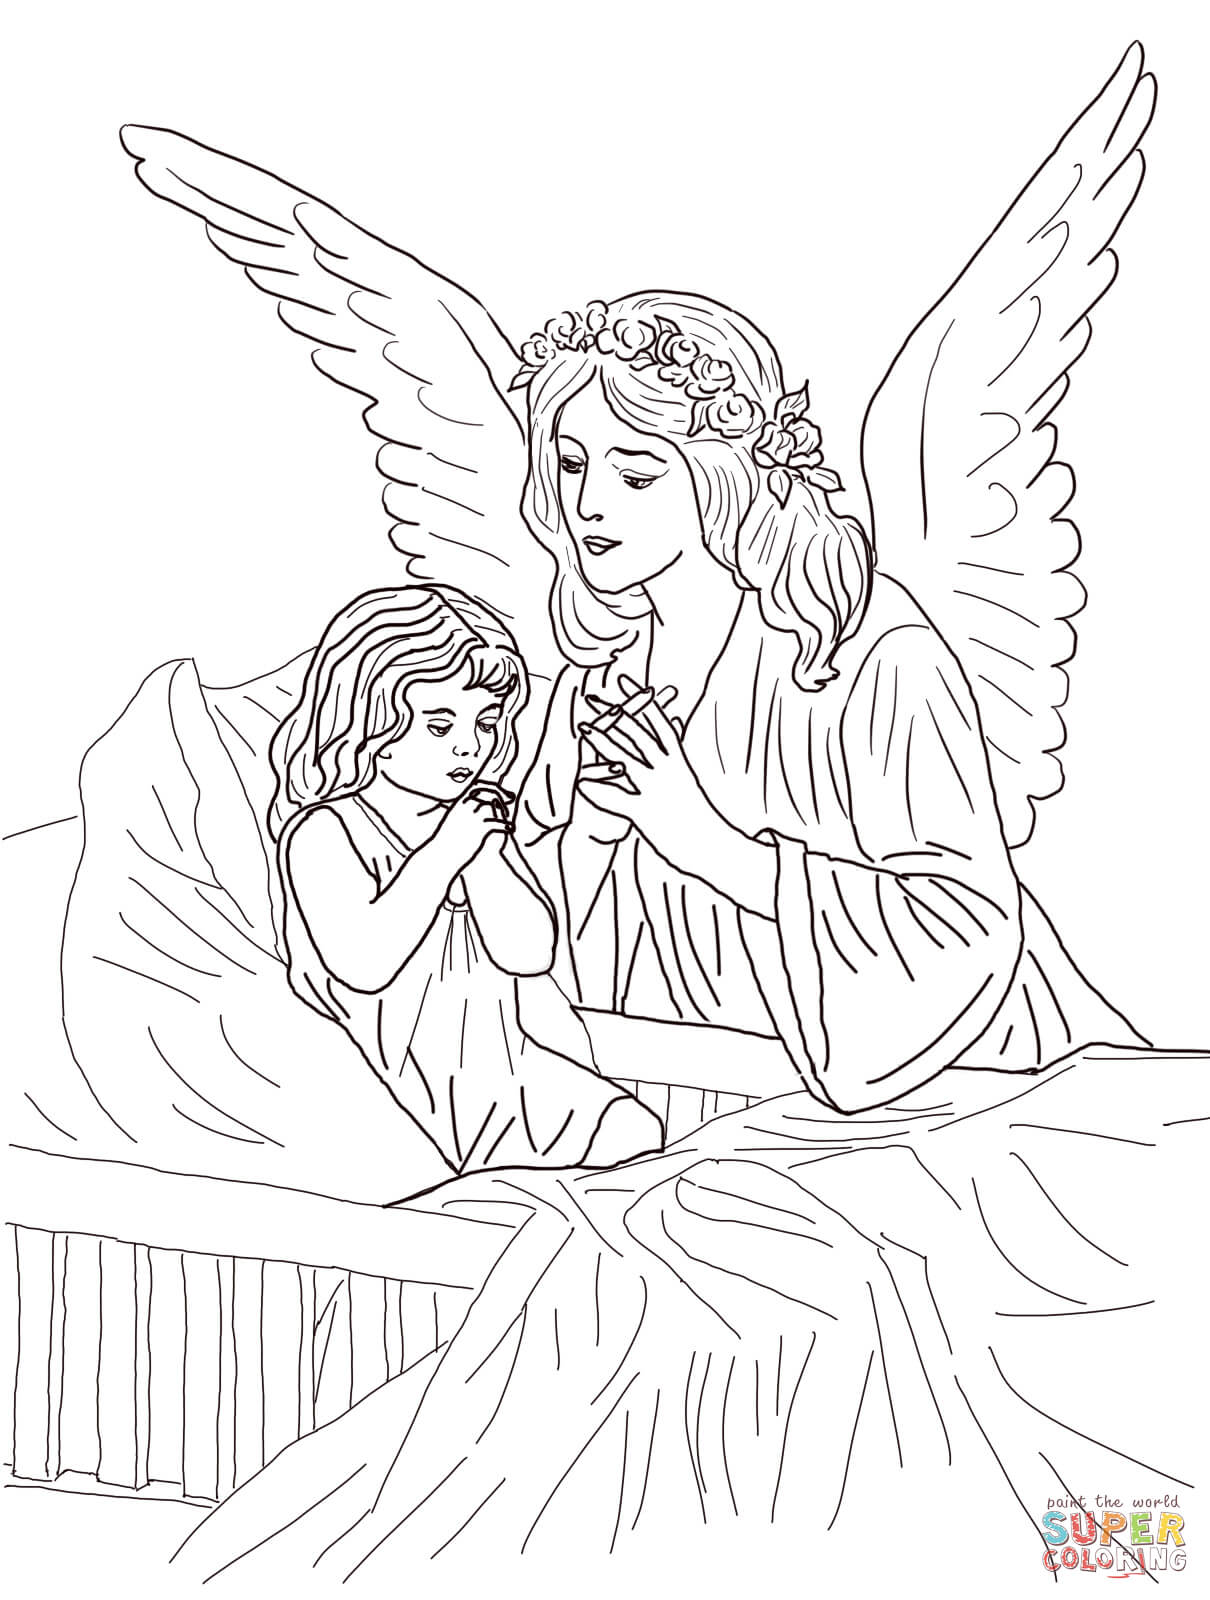 Angel - Coloring Pages for Kids and for Adults